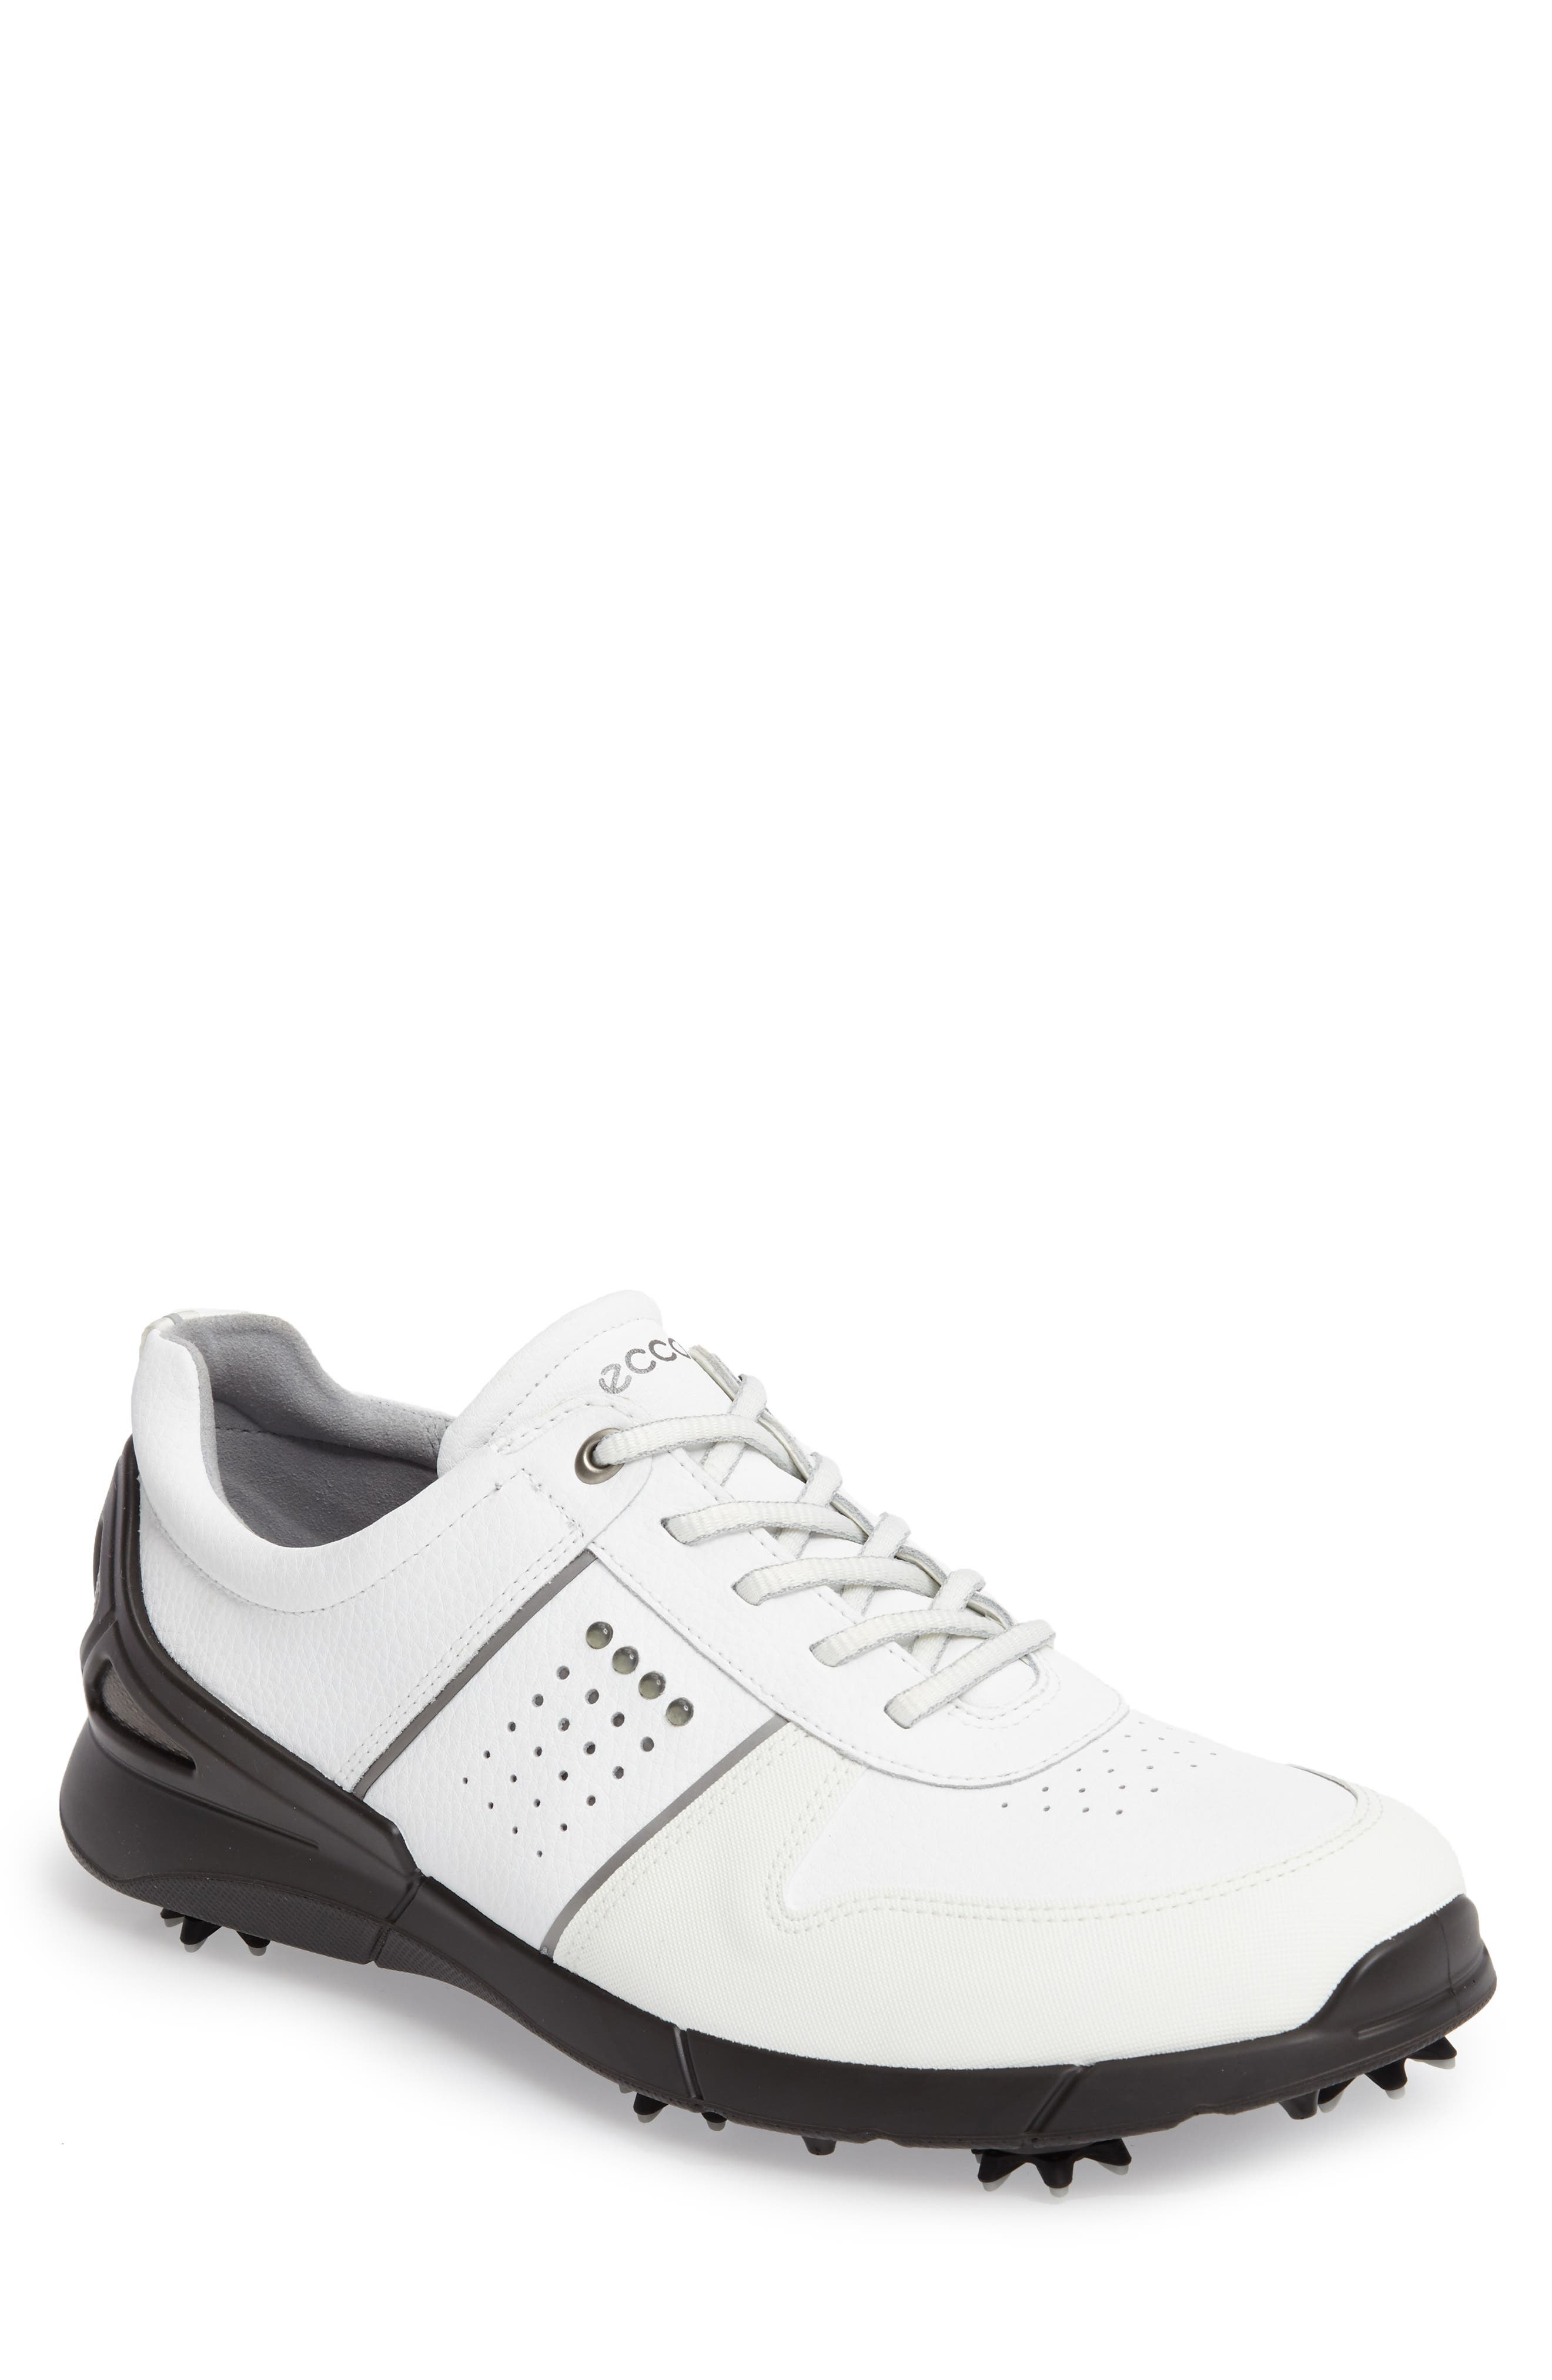 Base One Golf Shoe,                         Main,                         color, White